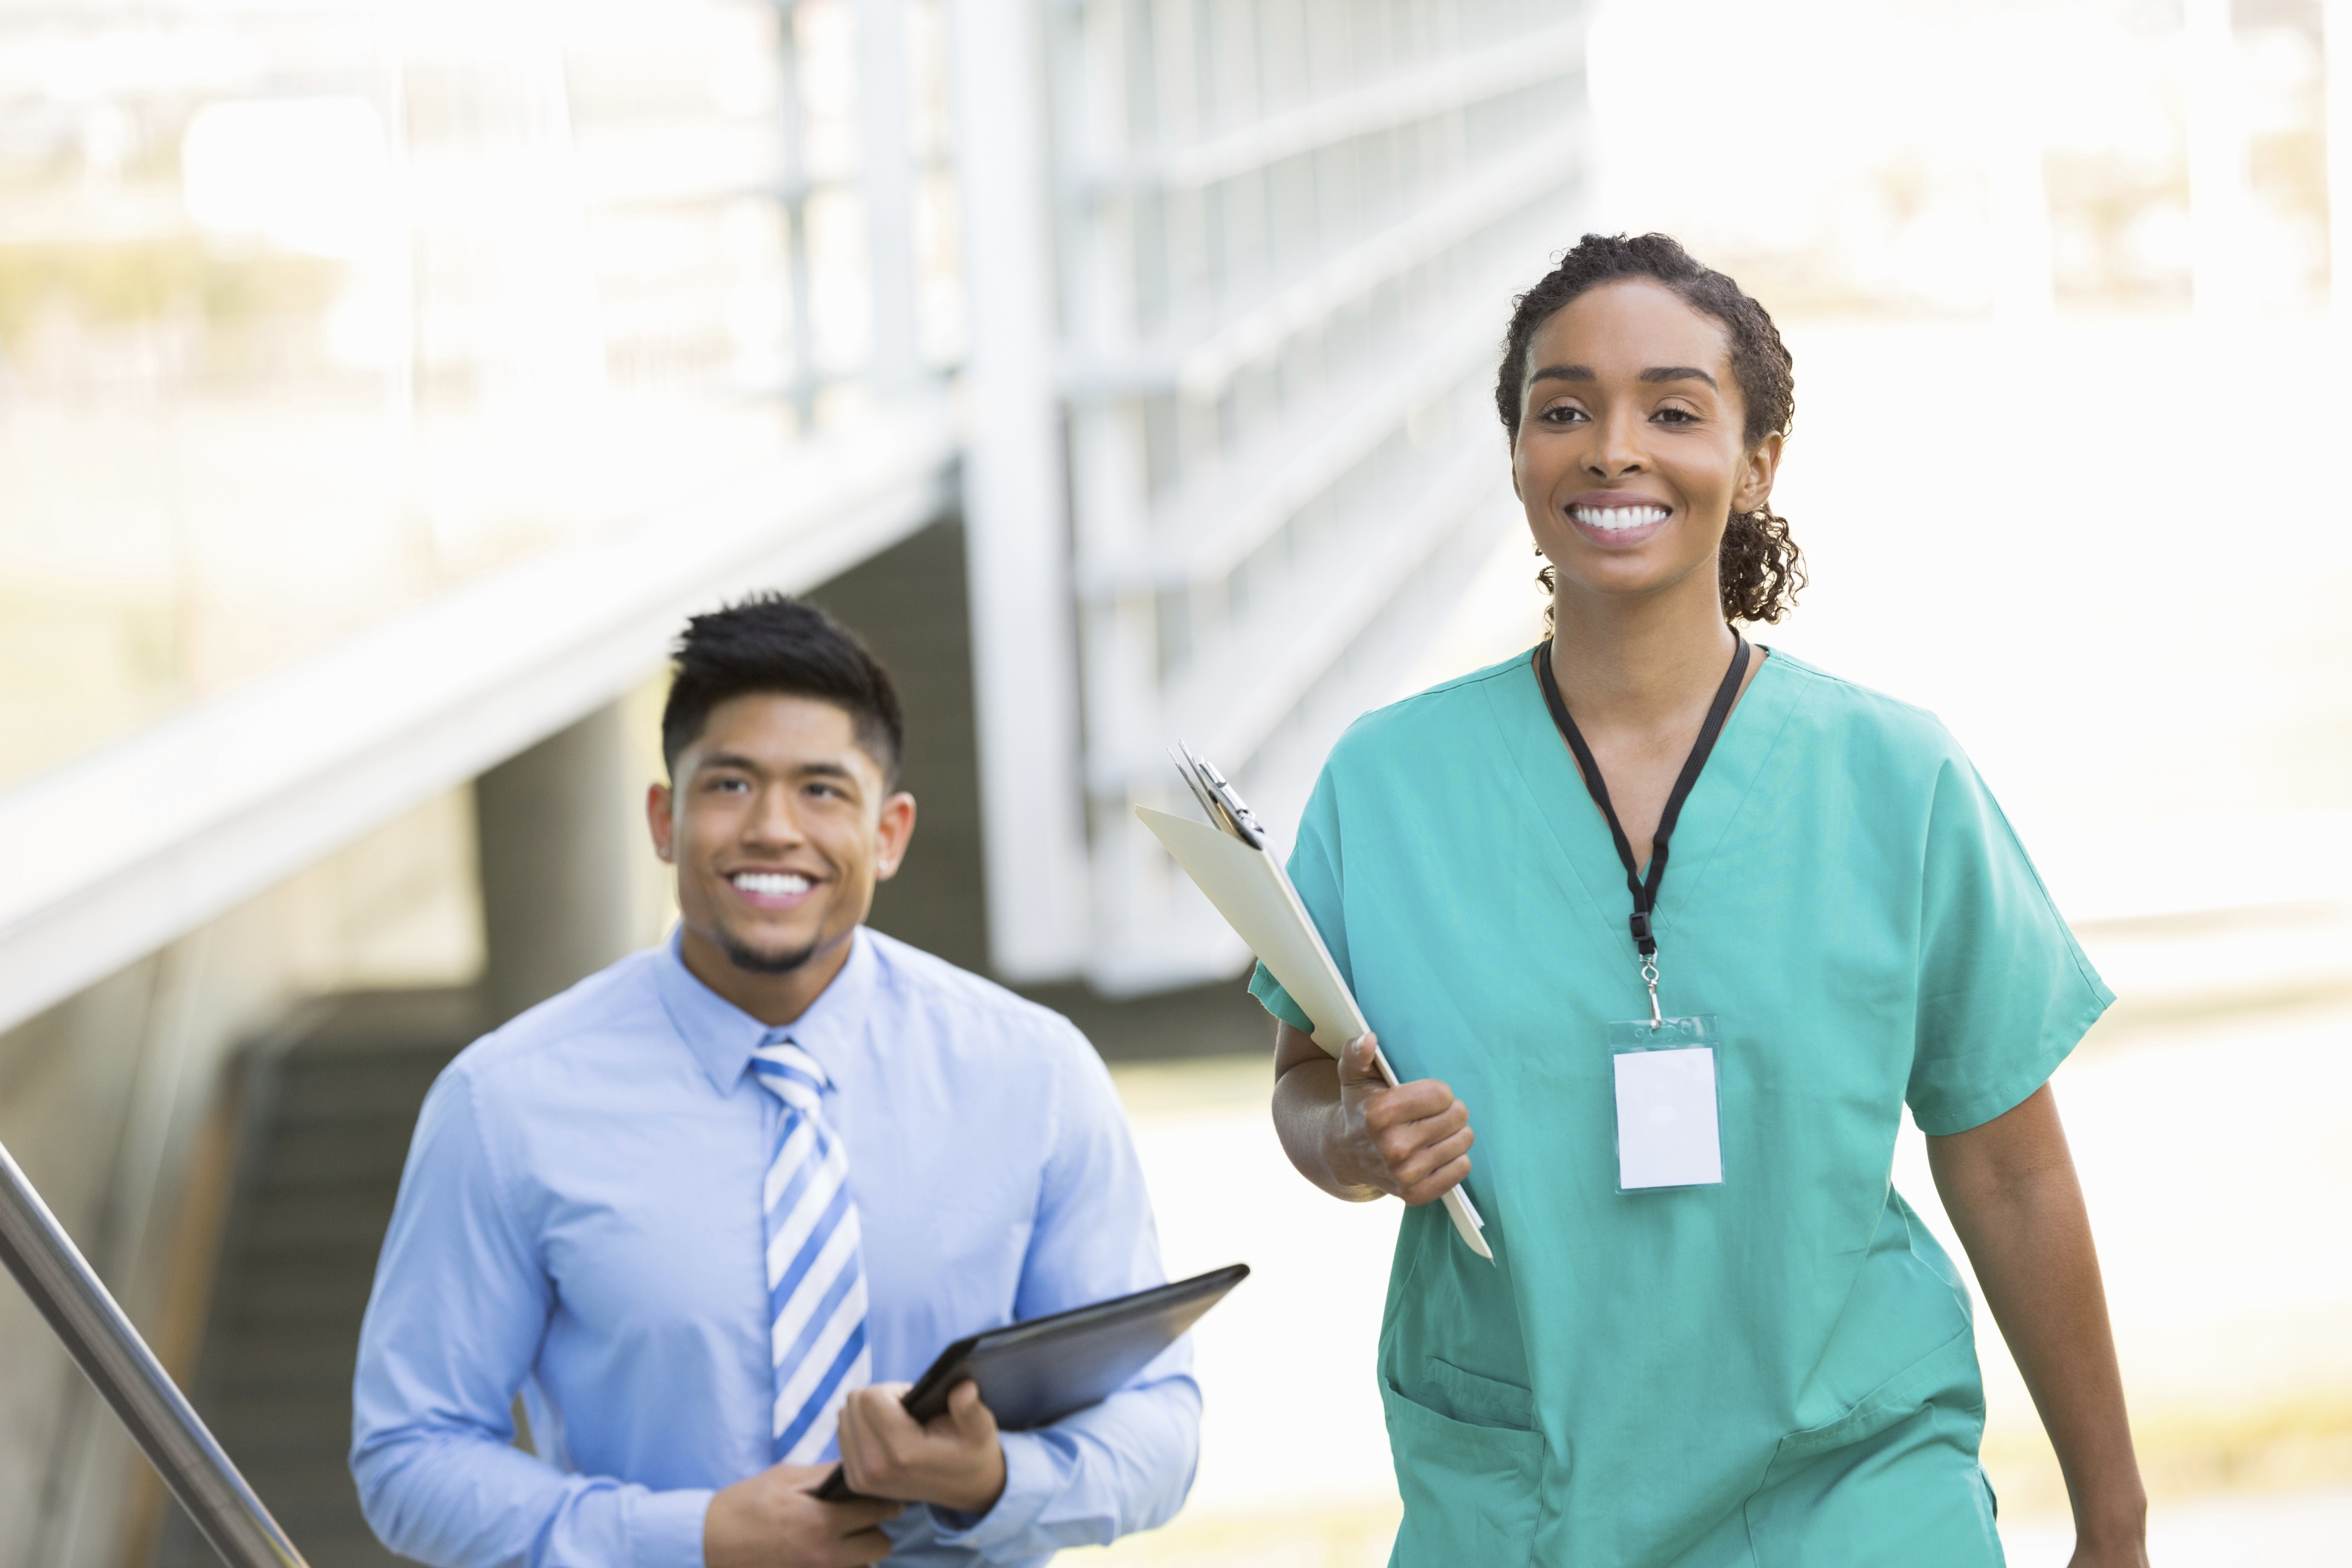 how to become physician assistant in ontario